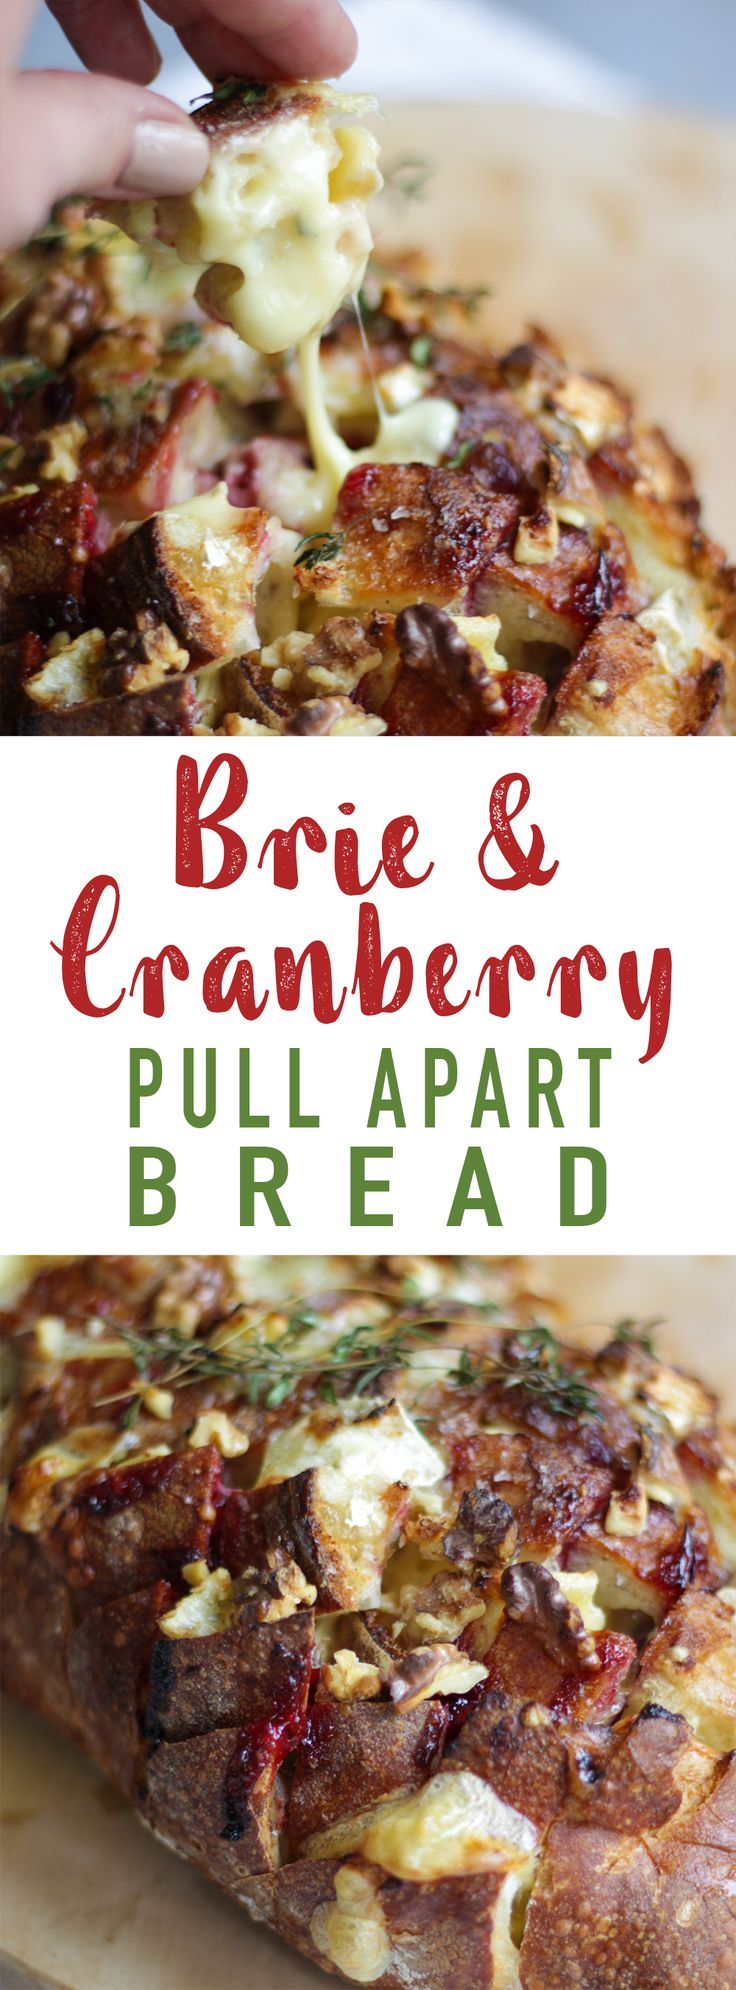 Easy and delicious Brie and Cranberry Pull Apart Bread. The ideal festive Christmas loaf to make for a party. #ChristmasFood